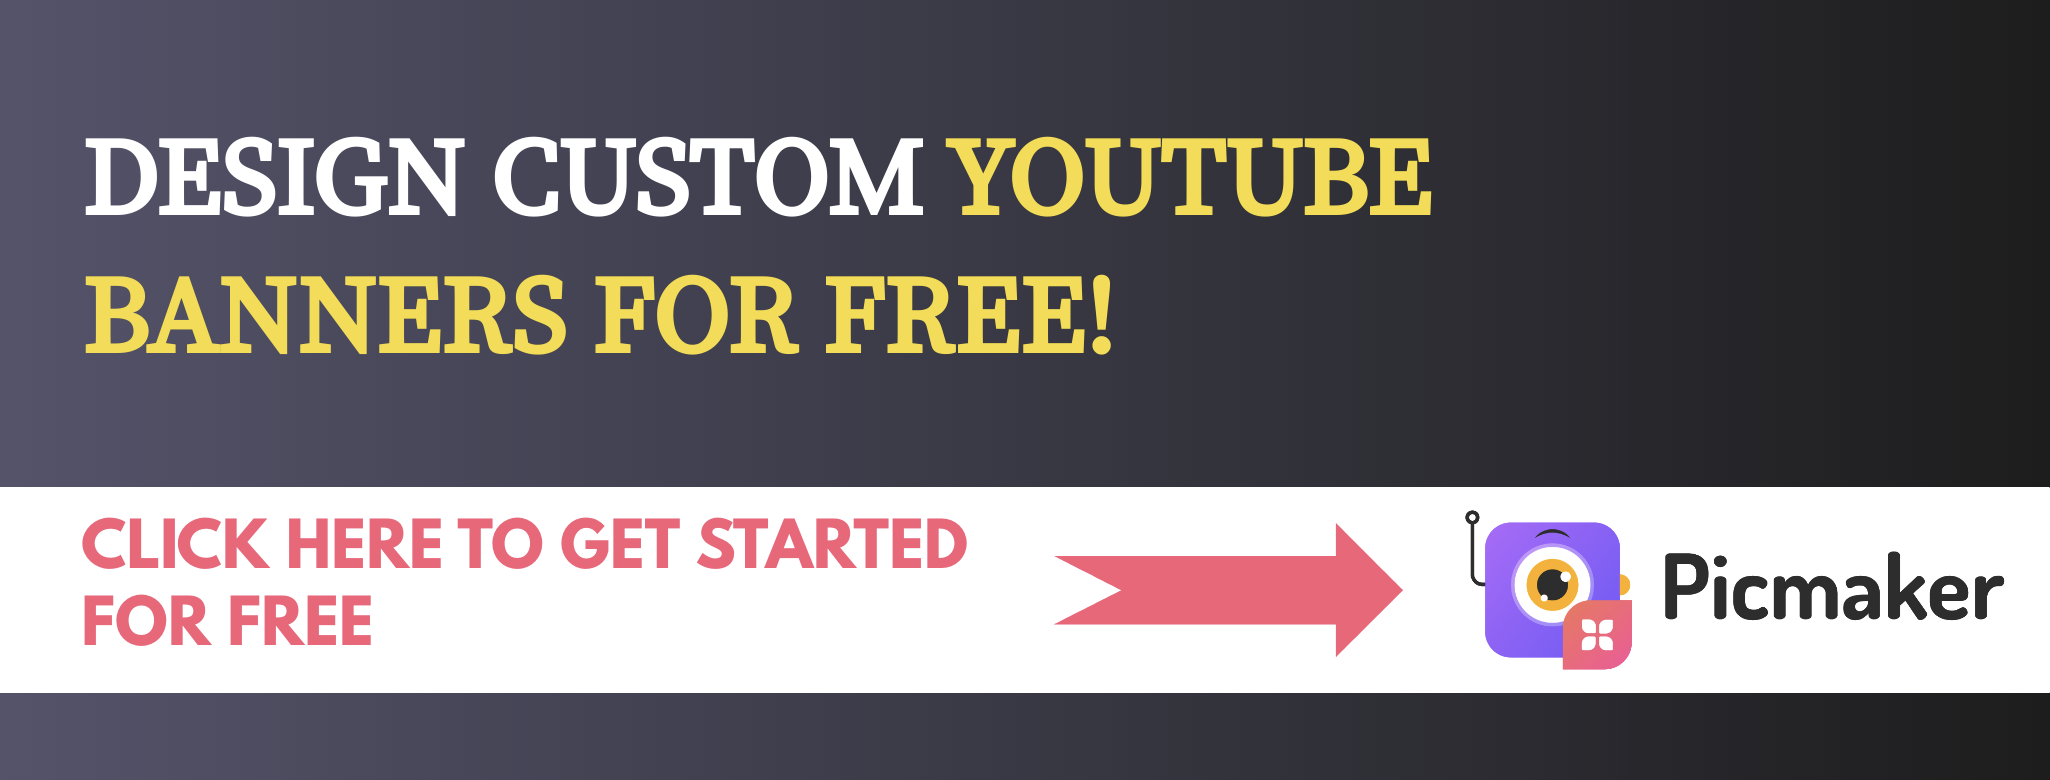 Create-your-own-Youtube-banner-with-Picmaker-4